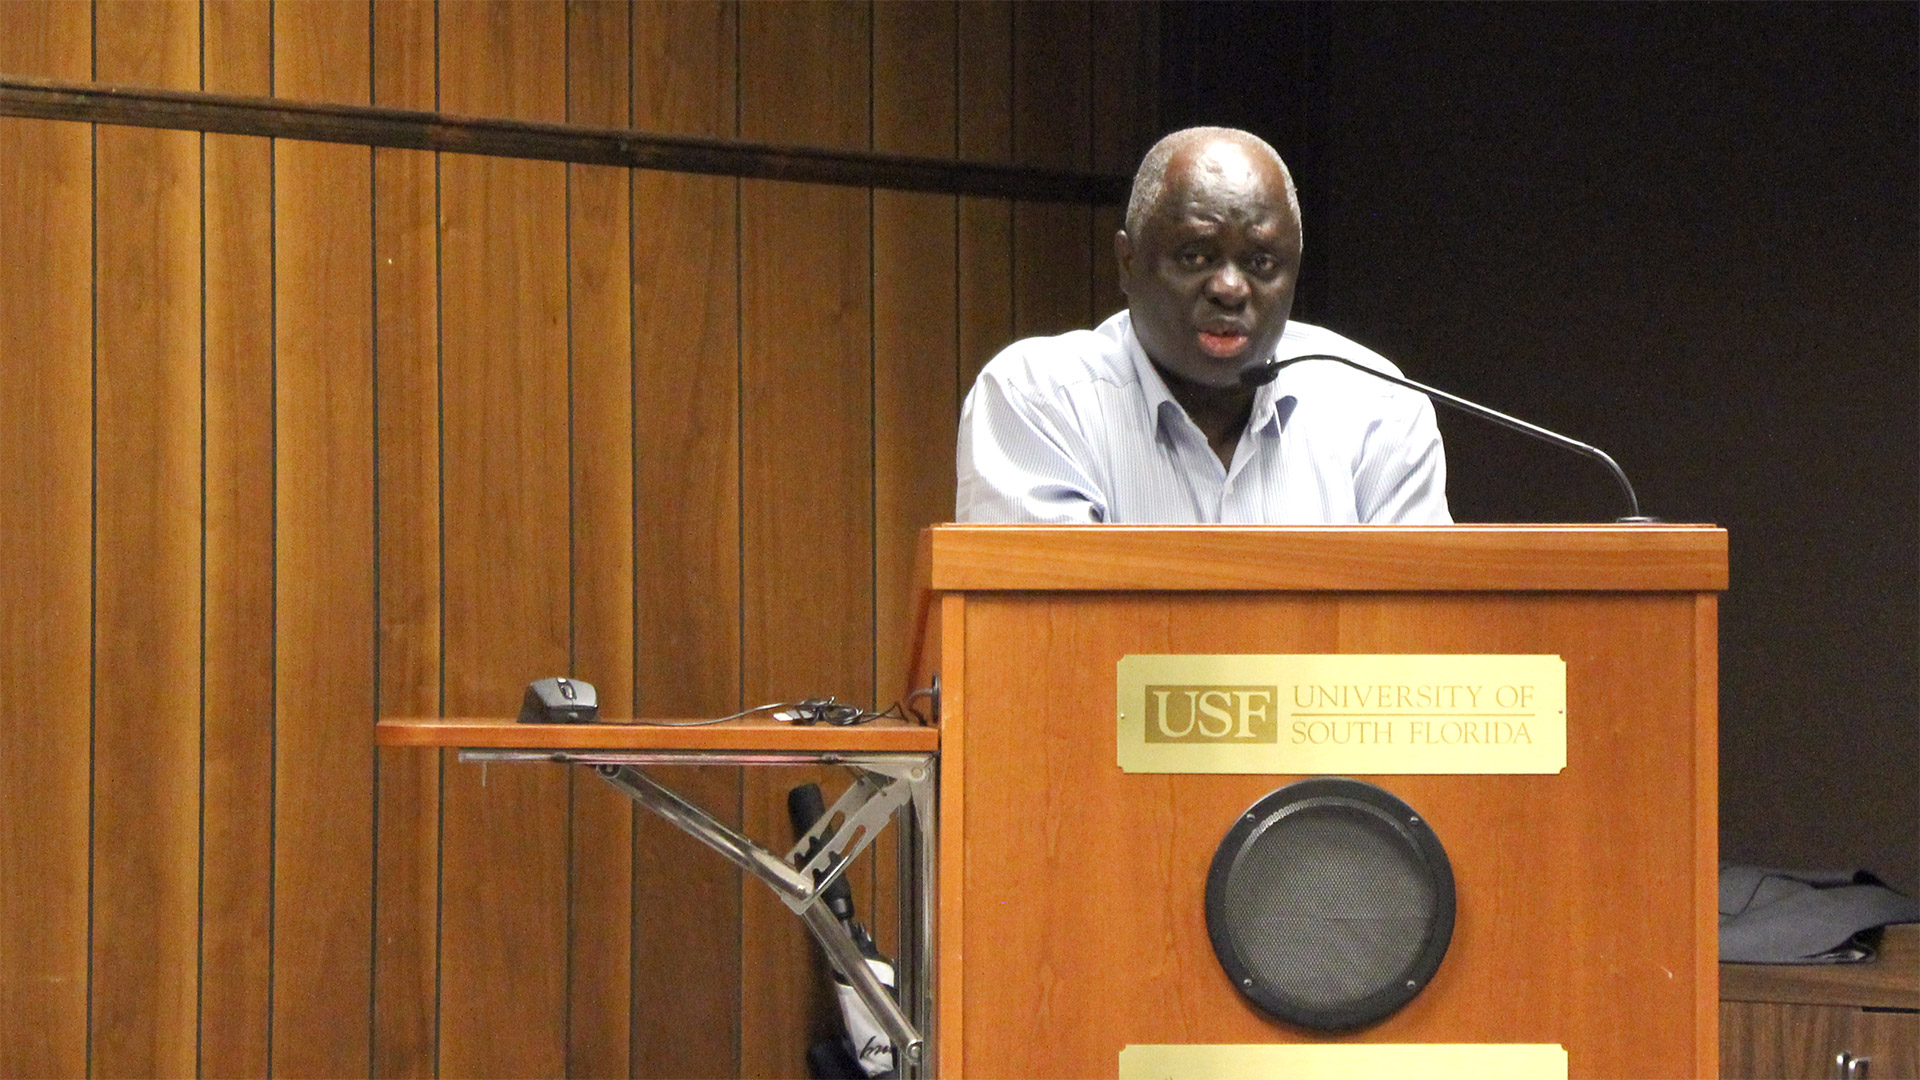 Edward Kissi, Associate Professor in USF Tampa's Department of Africana Studies, organized and moderated a panel at USF Tampa to discuss the Ebola outbreak in West Africa| Photo taken by T.J. Greaney